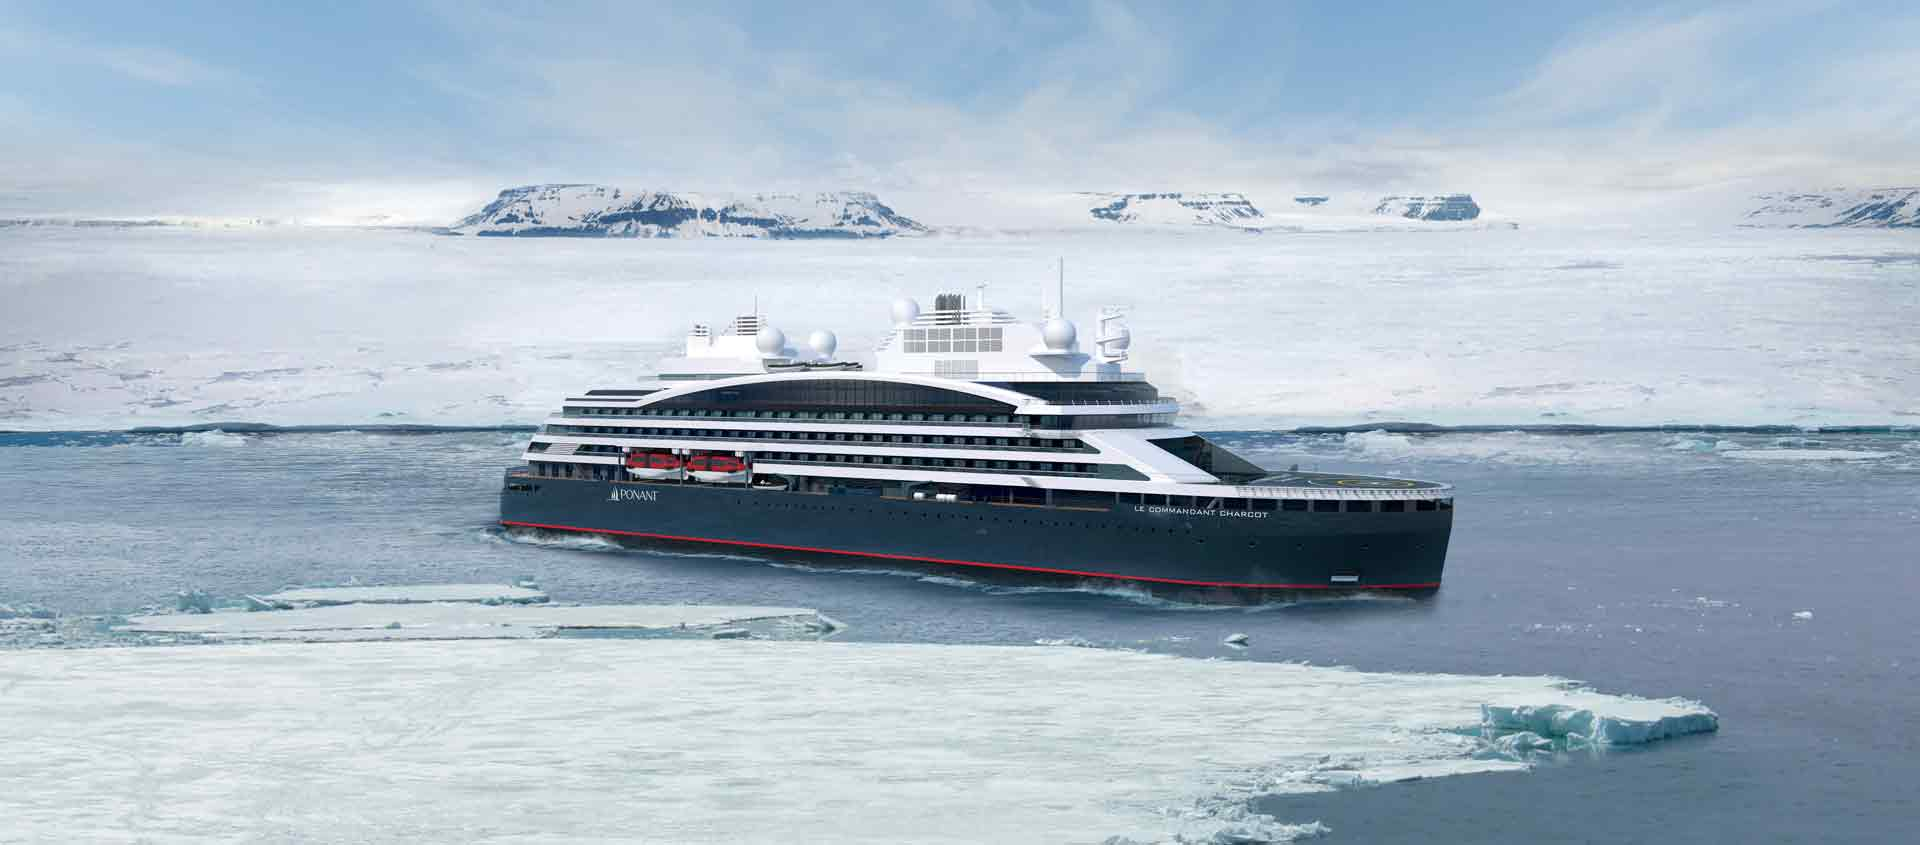 Cruise South of the Antarctic Circle image of icebreaker Le Commandant Charcot